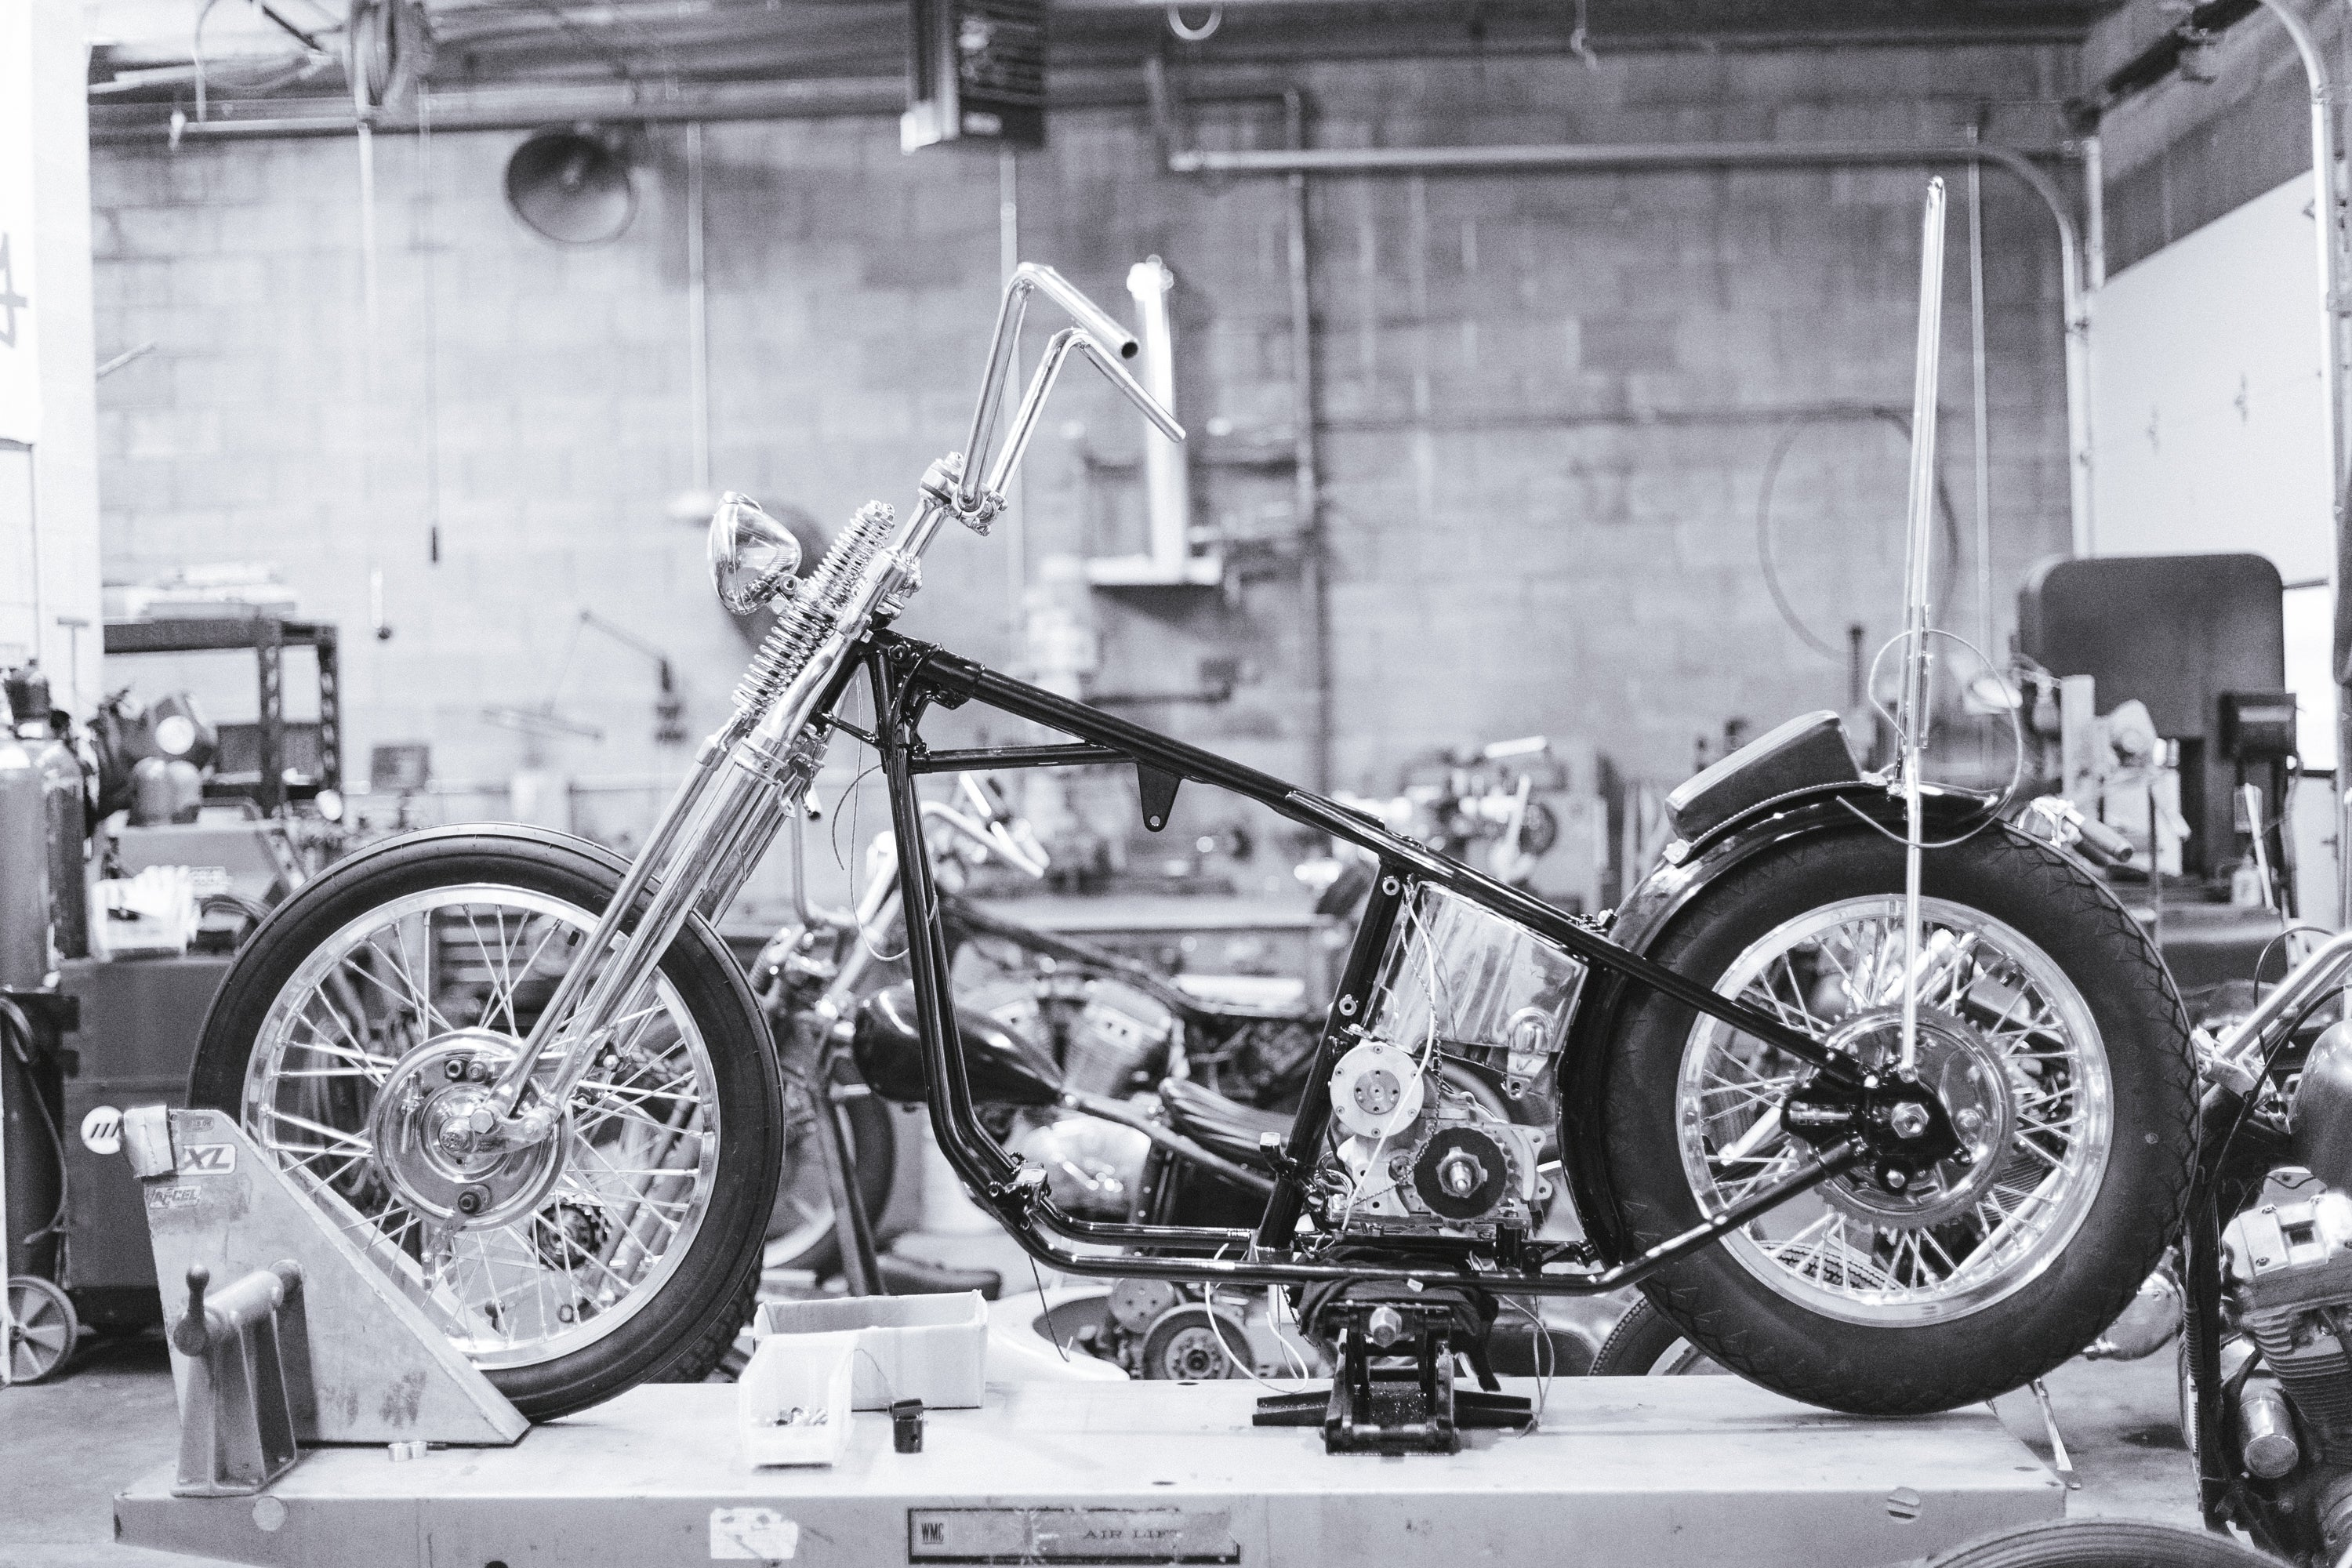 Greg's 1975 Shovelhead – Prism Supply